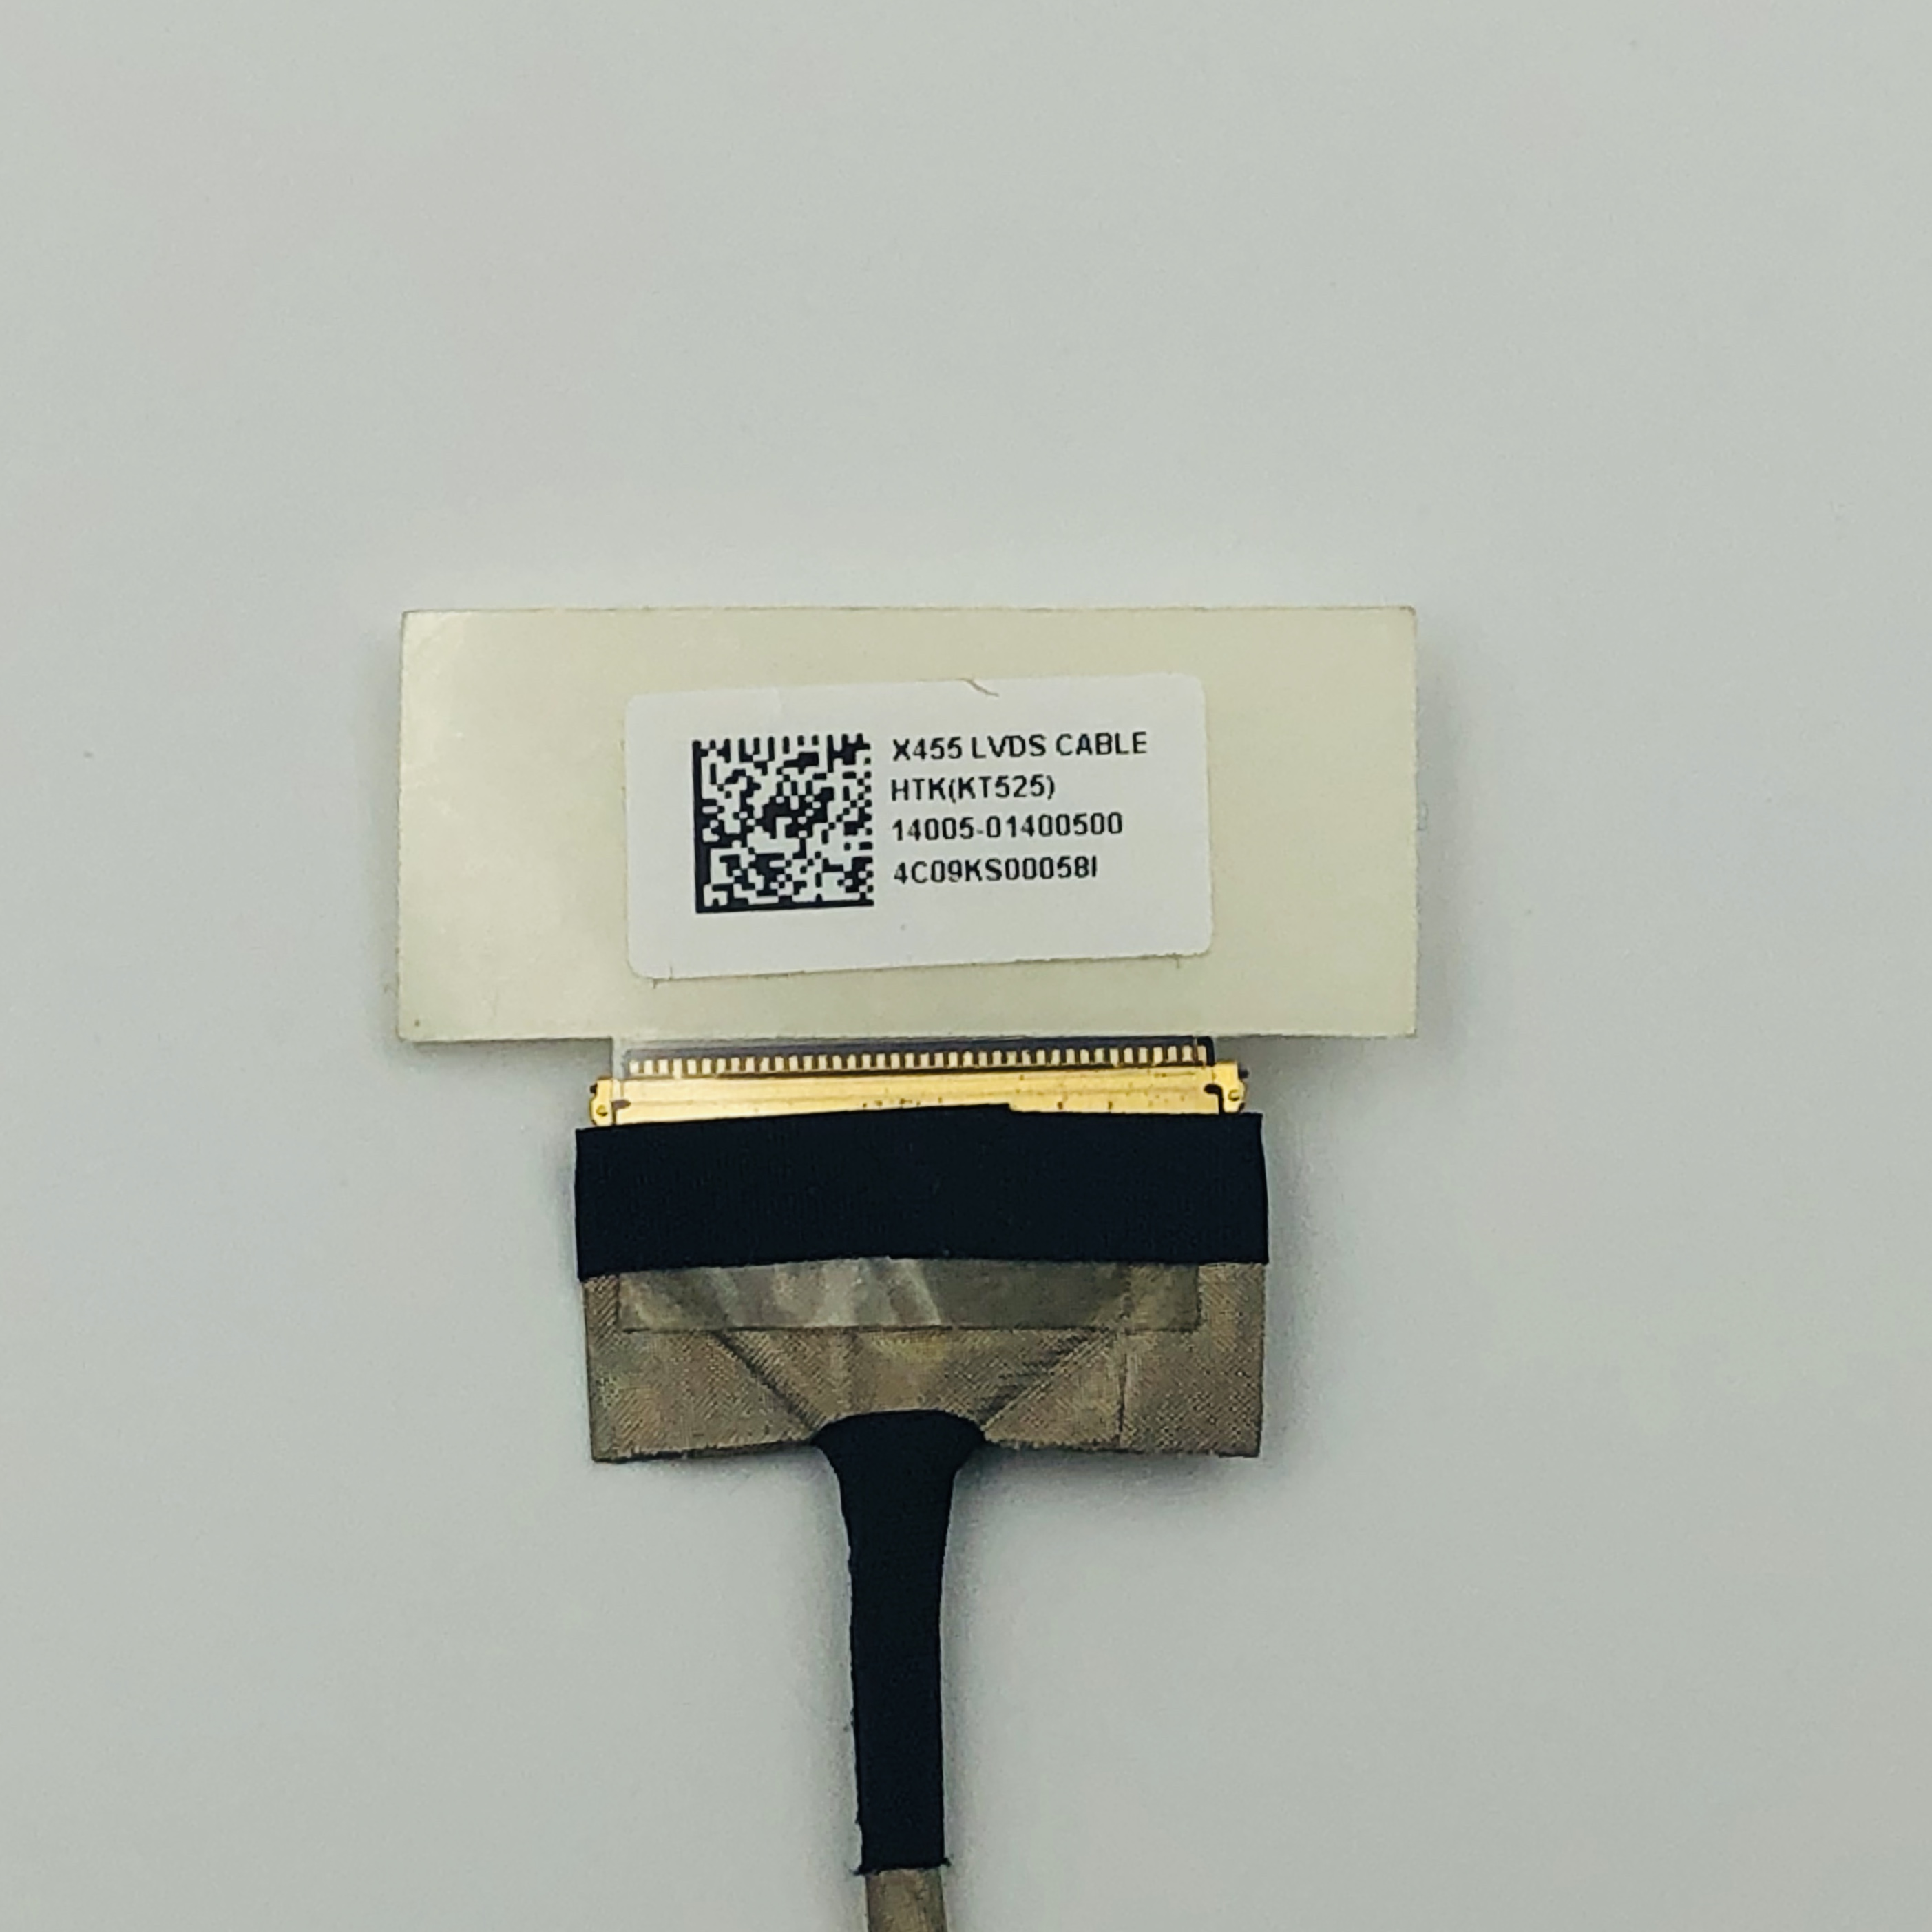 Computer Cables Original Yoton LCD LED Video Flex Cable for ASUS A455L A455 X455L K455L X455LD F455L K454W F455LJ 14005-01400500 Cable Length: Other